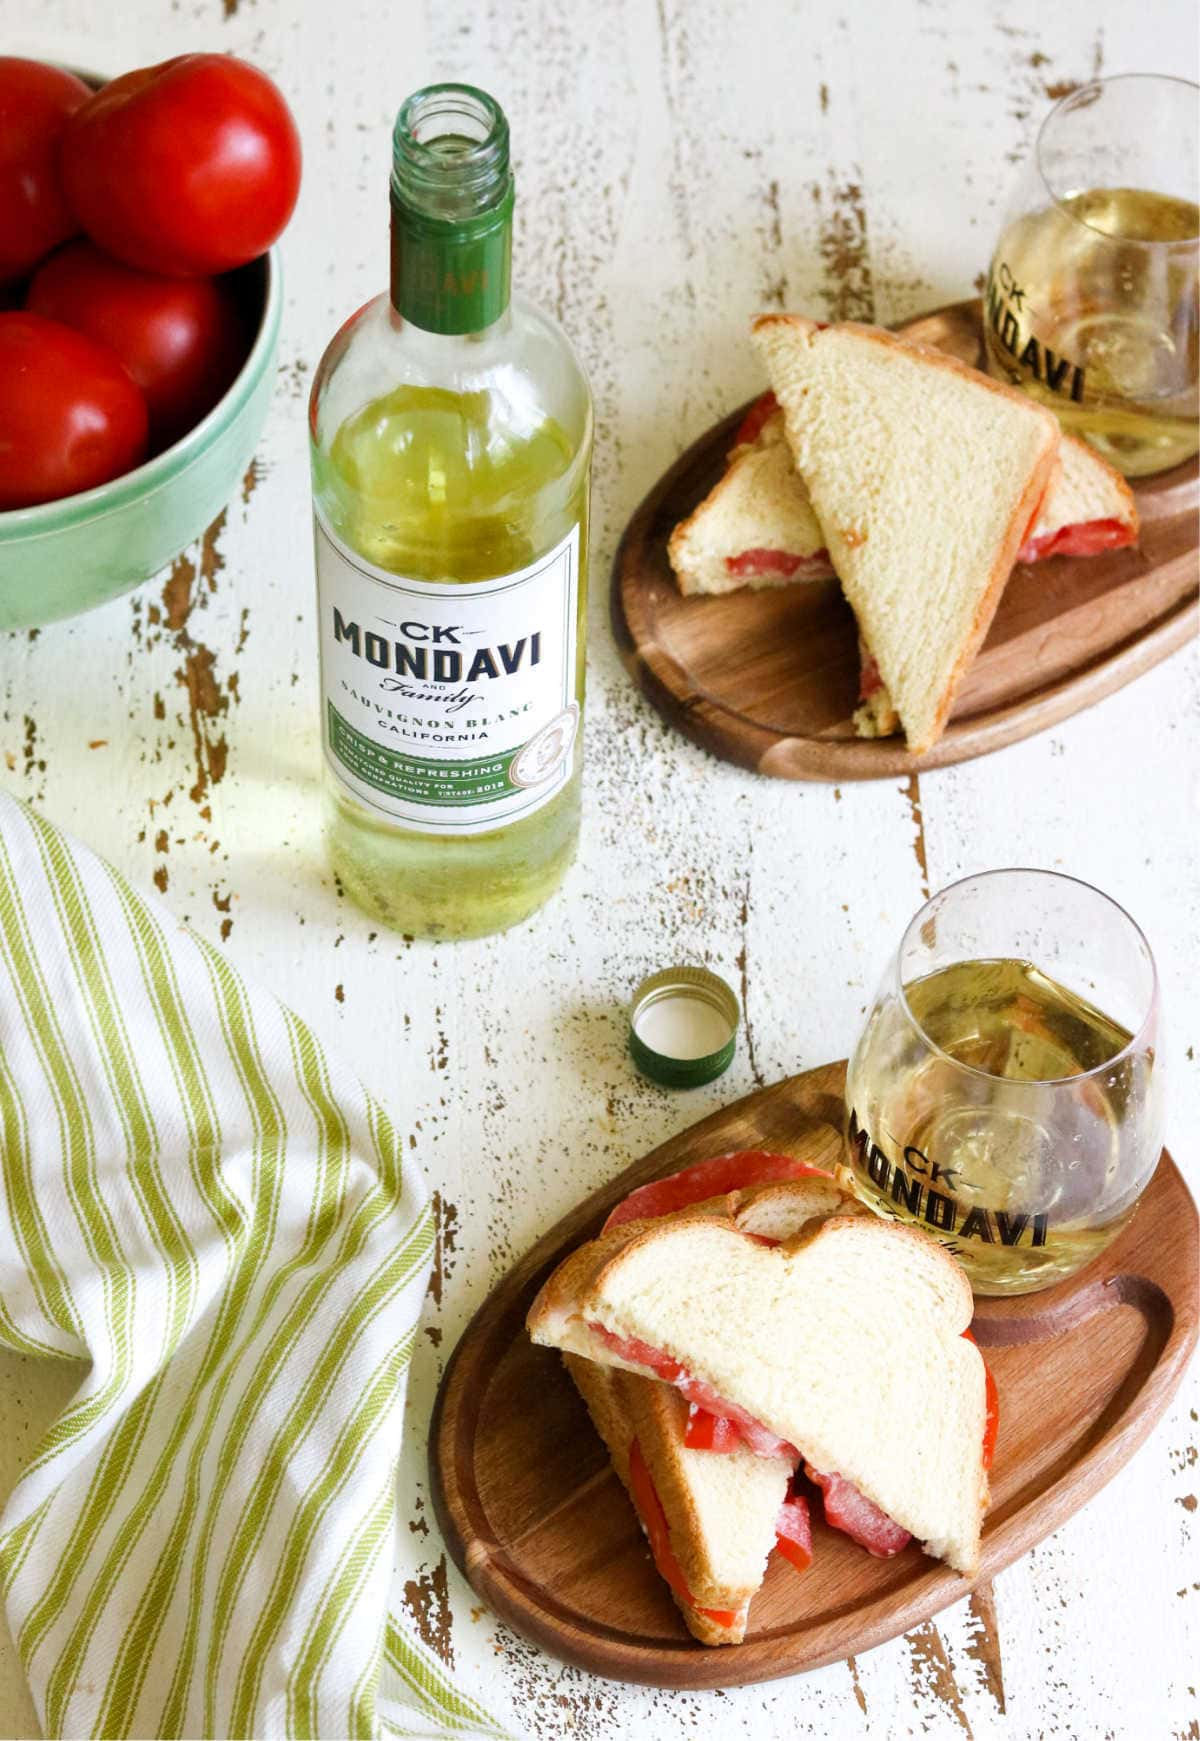 Plate of tomato sandwiches with a bottle of white wine.